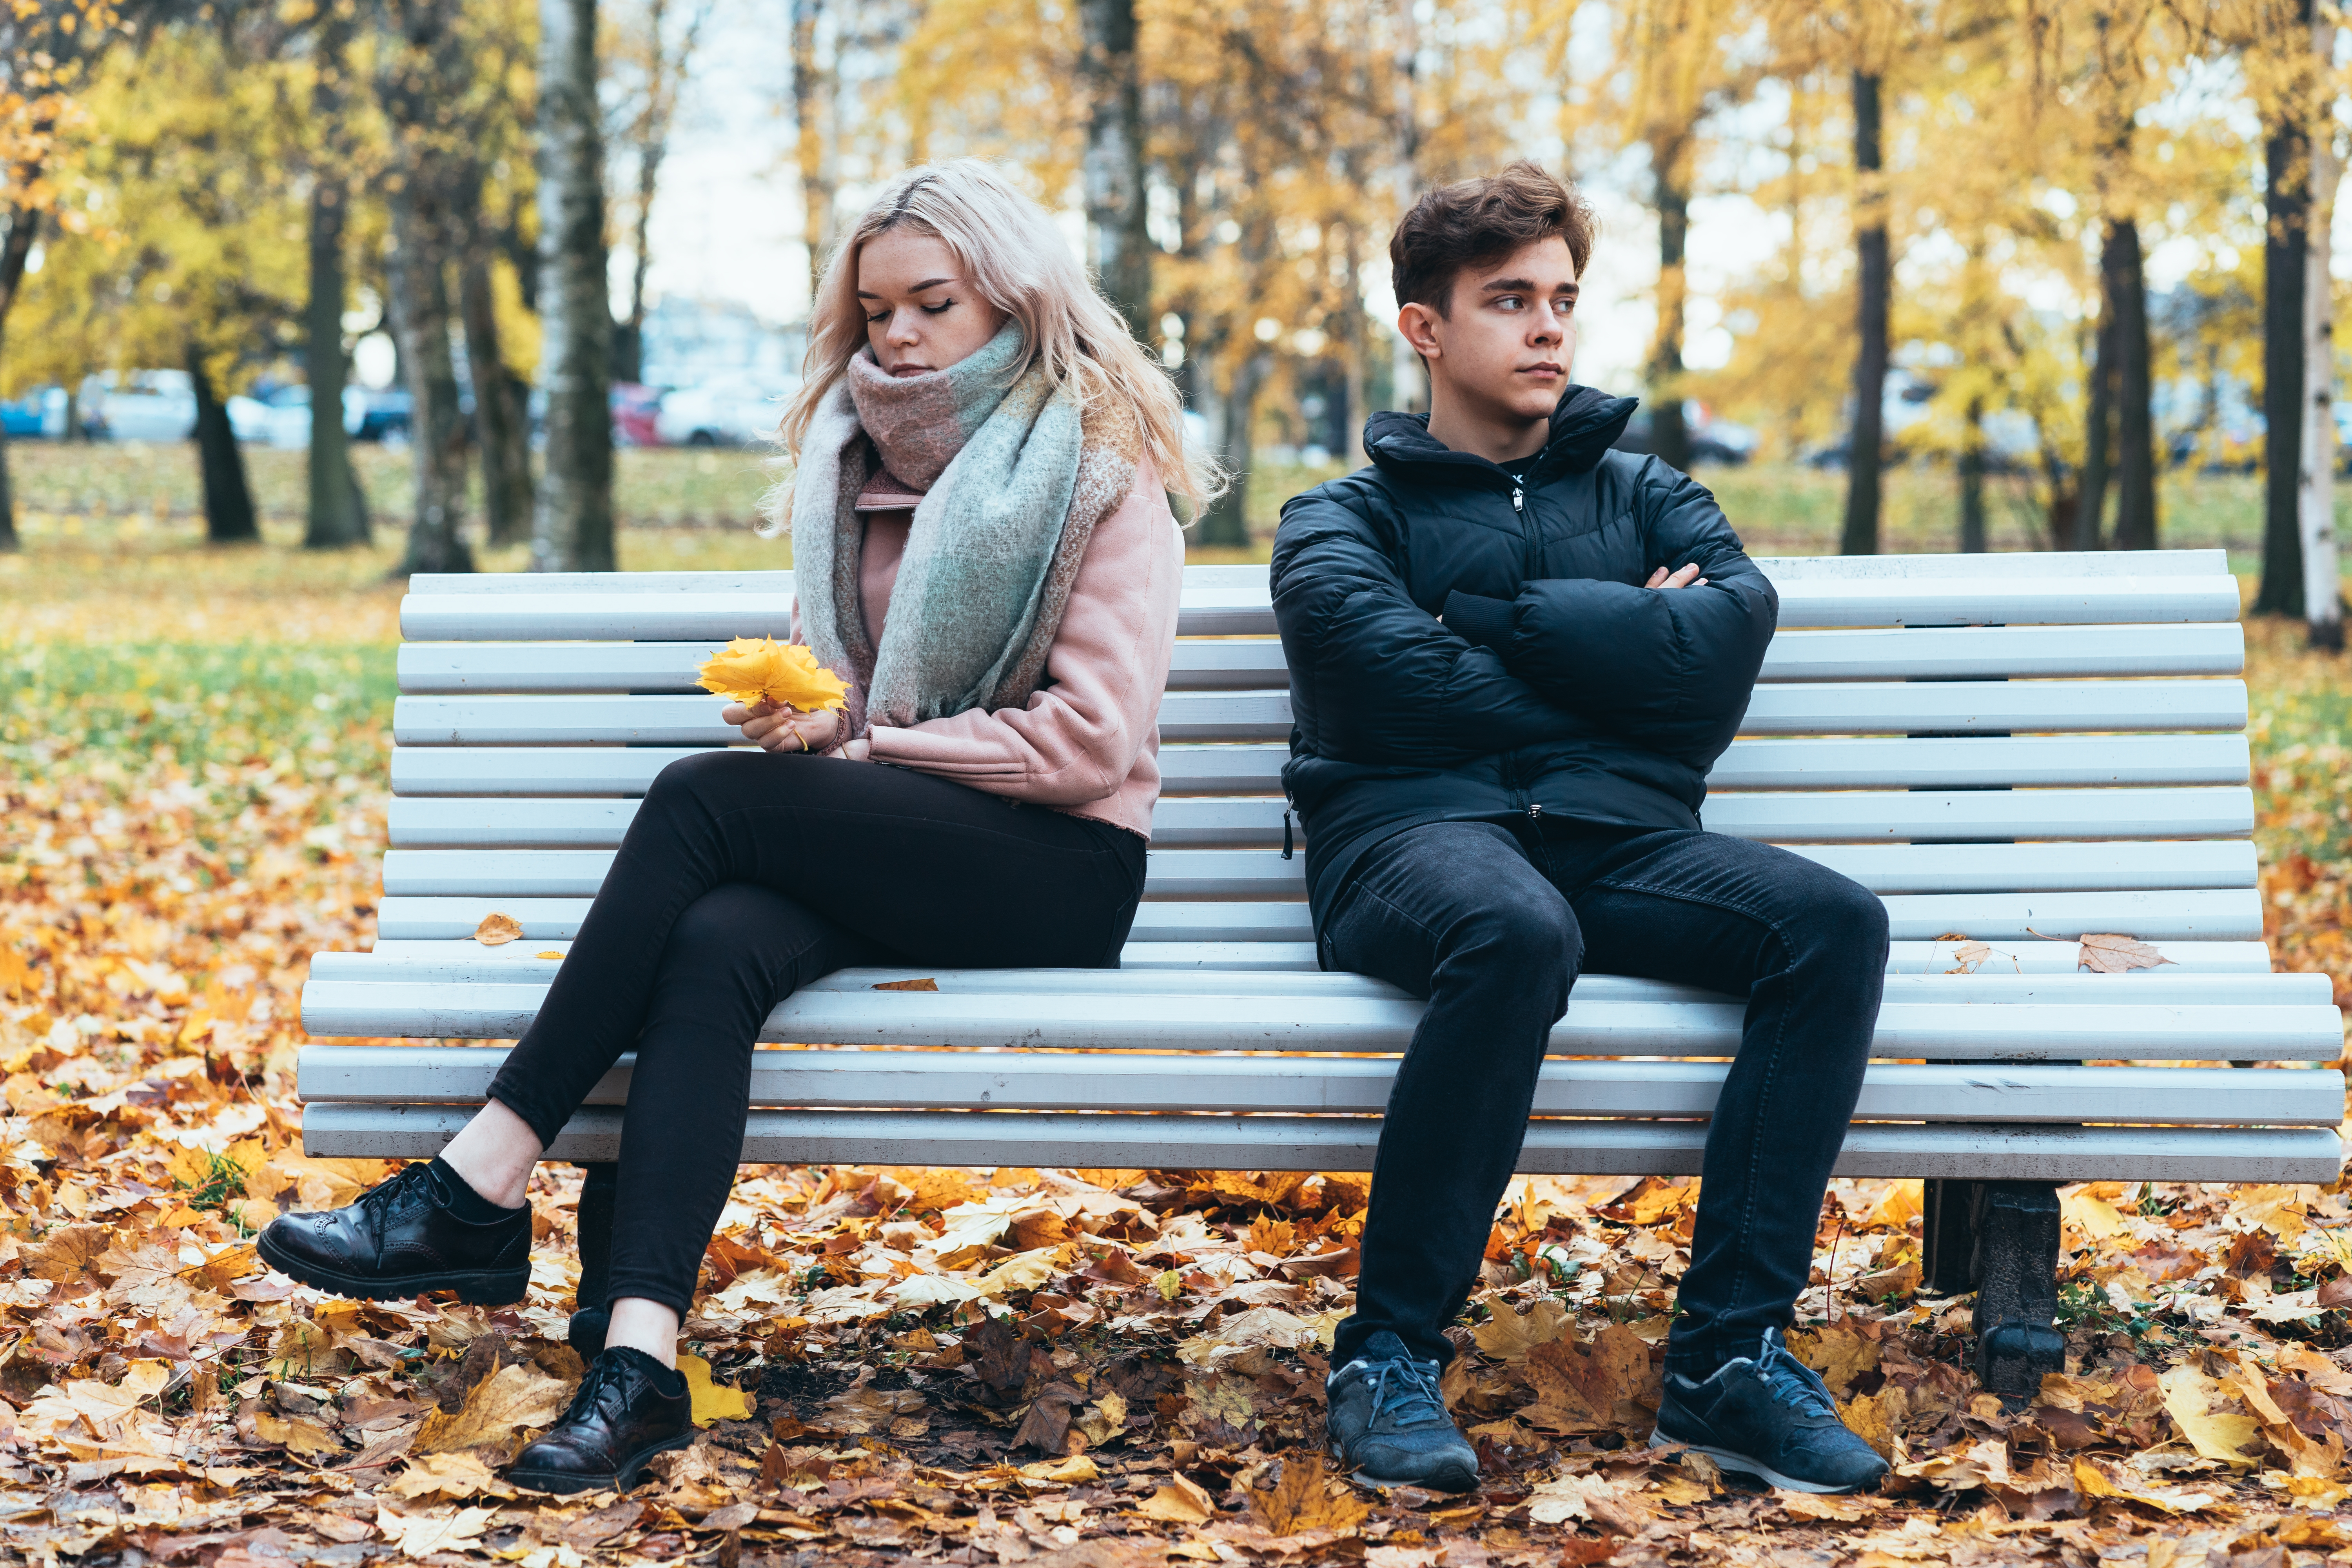 Two teenagers in love in quarrel. A brunette boy and blonde girl are sitting on opposite ends of benches, their backs to each other, do not want to talk and talk. Teenage Difficulty Concept